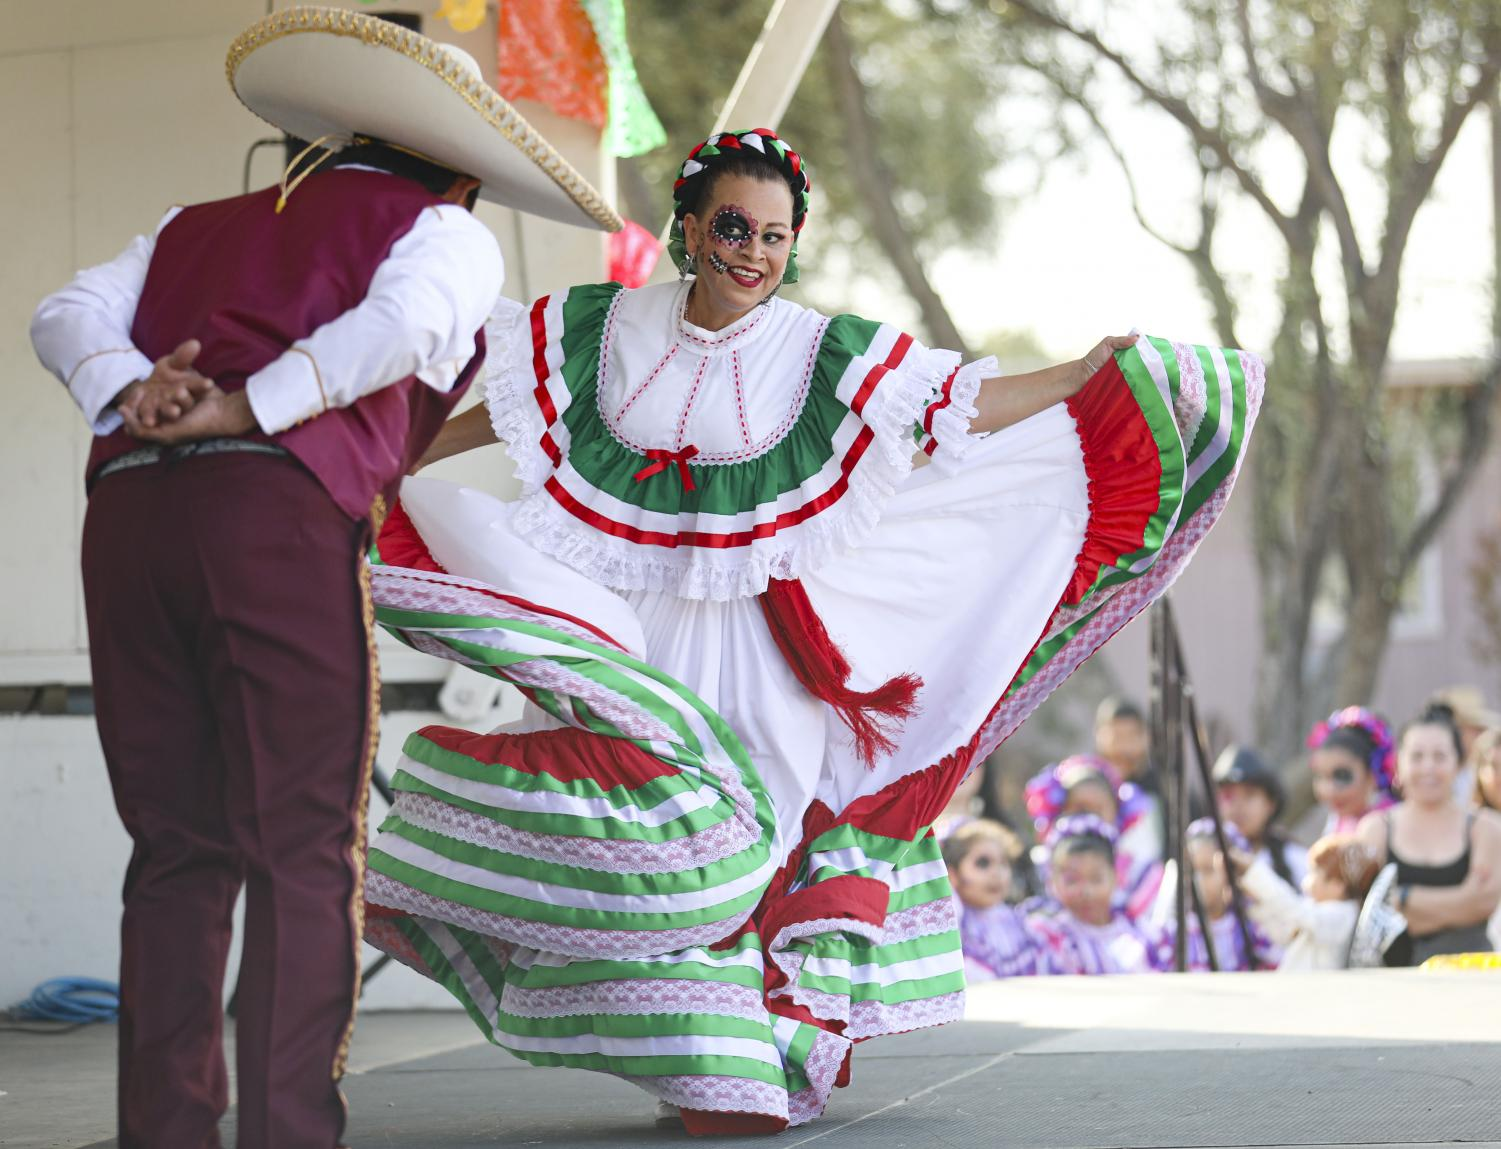 Carmen Gil dances with her husband Juan Gil during a charismatic folk dance at the Dia de los Muertos Festival in Simi Valley on Sunday, Oct. 27. Photo credit: Ryan Bough